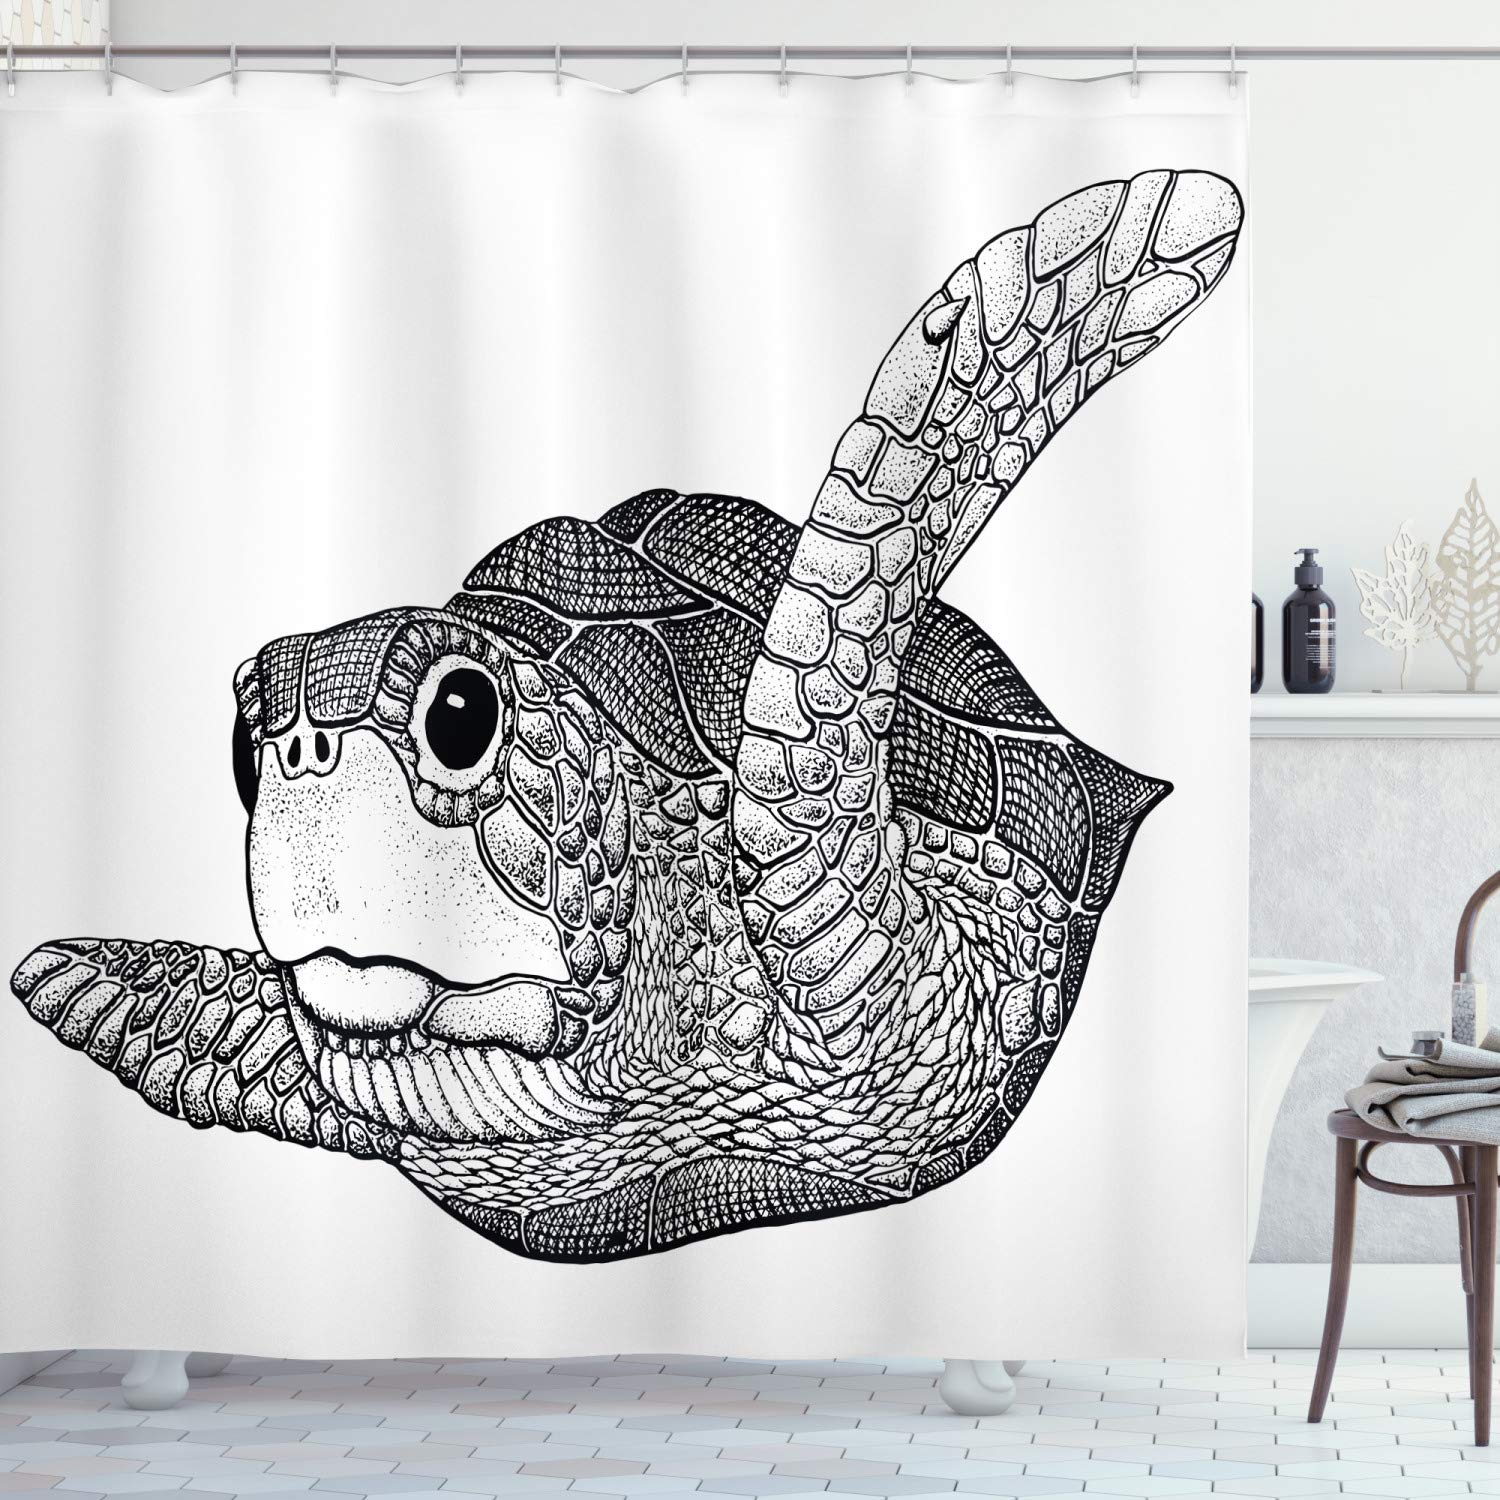 Ambesonne Nautical Shower Curtain, Cute Sea Turtle Marine Animal Exotic Creature Ocean Underwater Illustration, Fabric Bathroom Decor Set with Hooks, 84 Inches Extra Long, Light Grey White